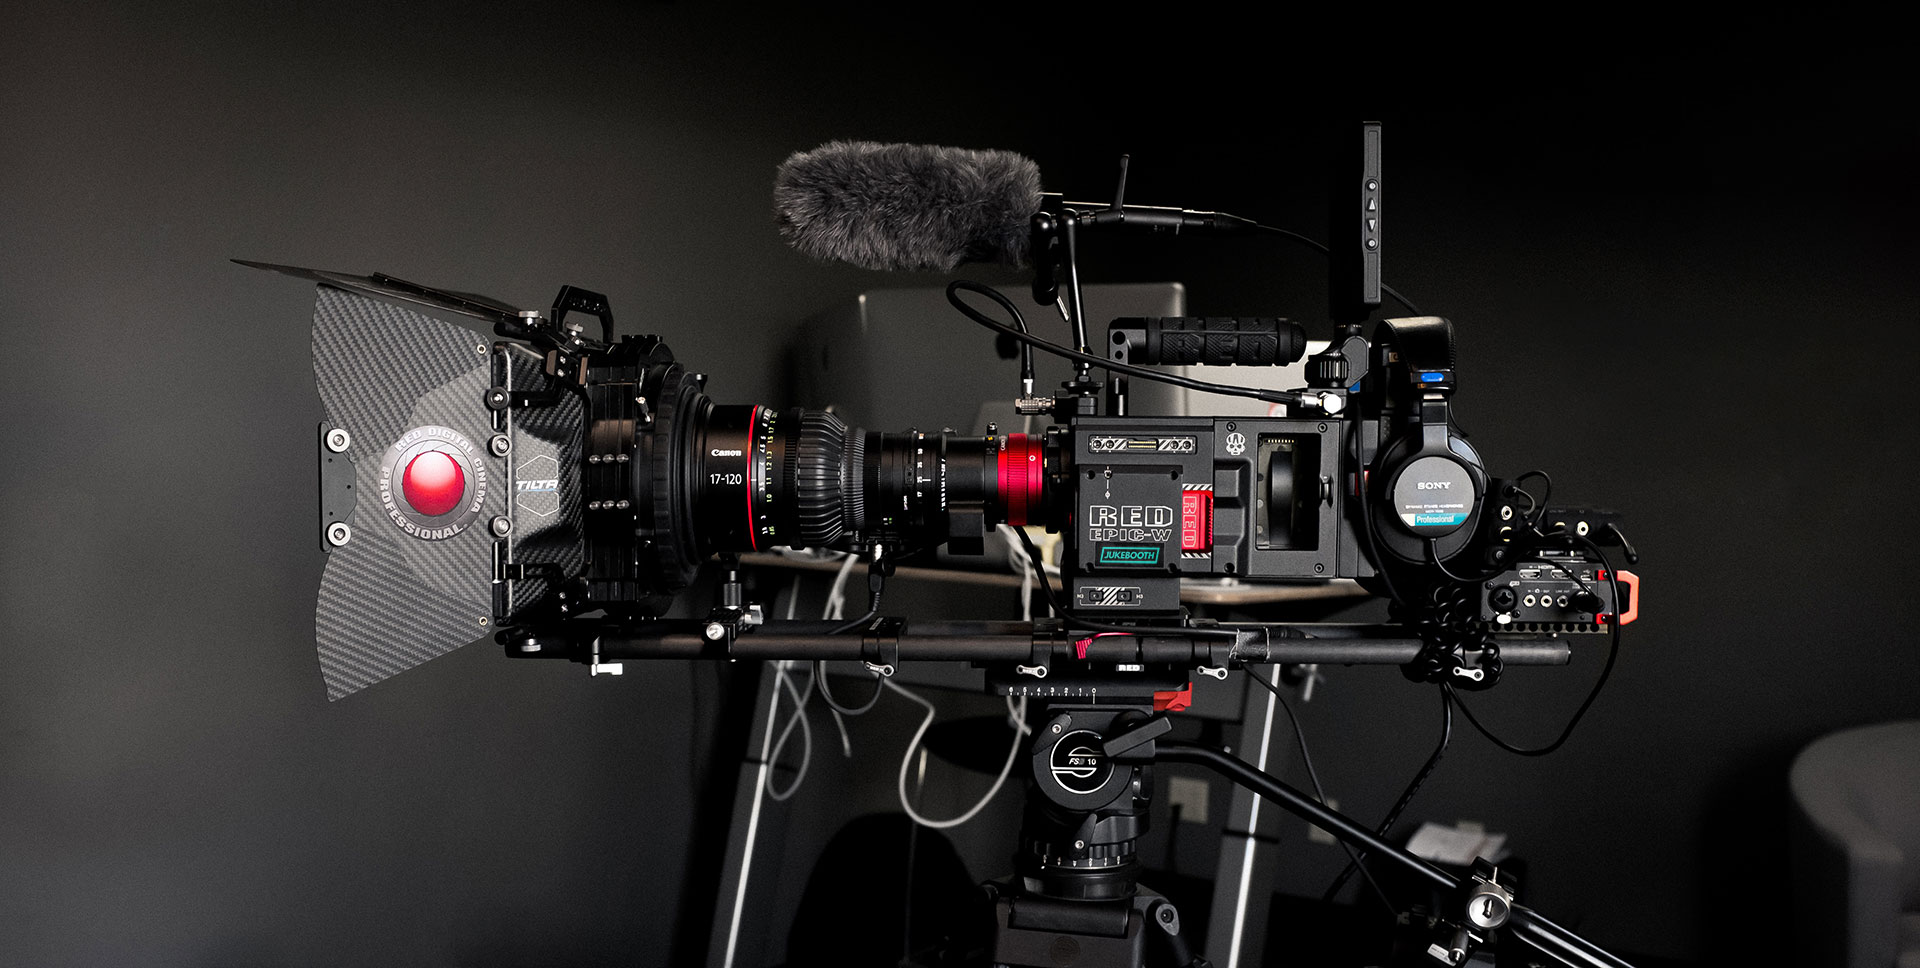 Jukebooth - Video Production Red Epic